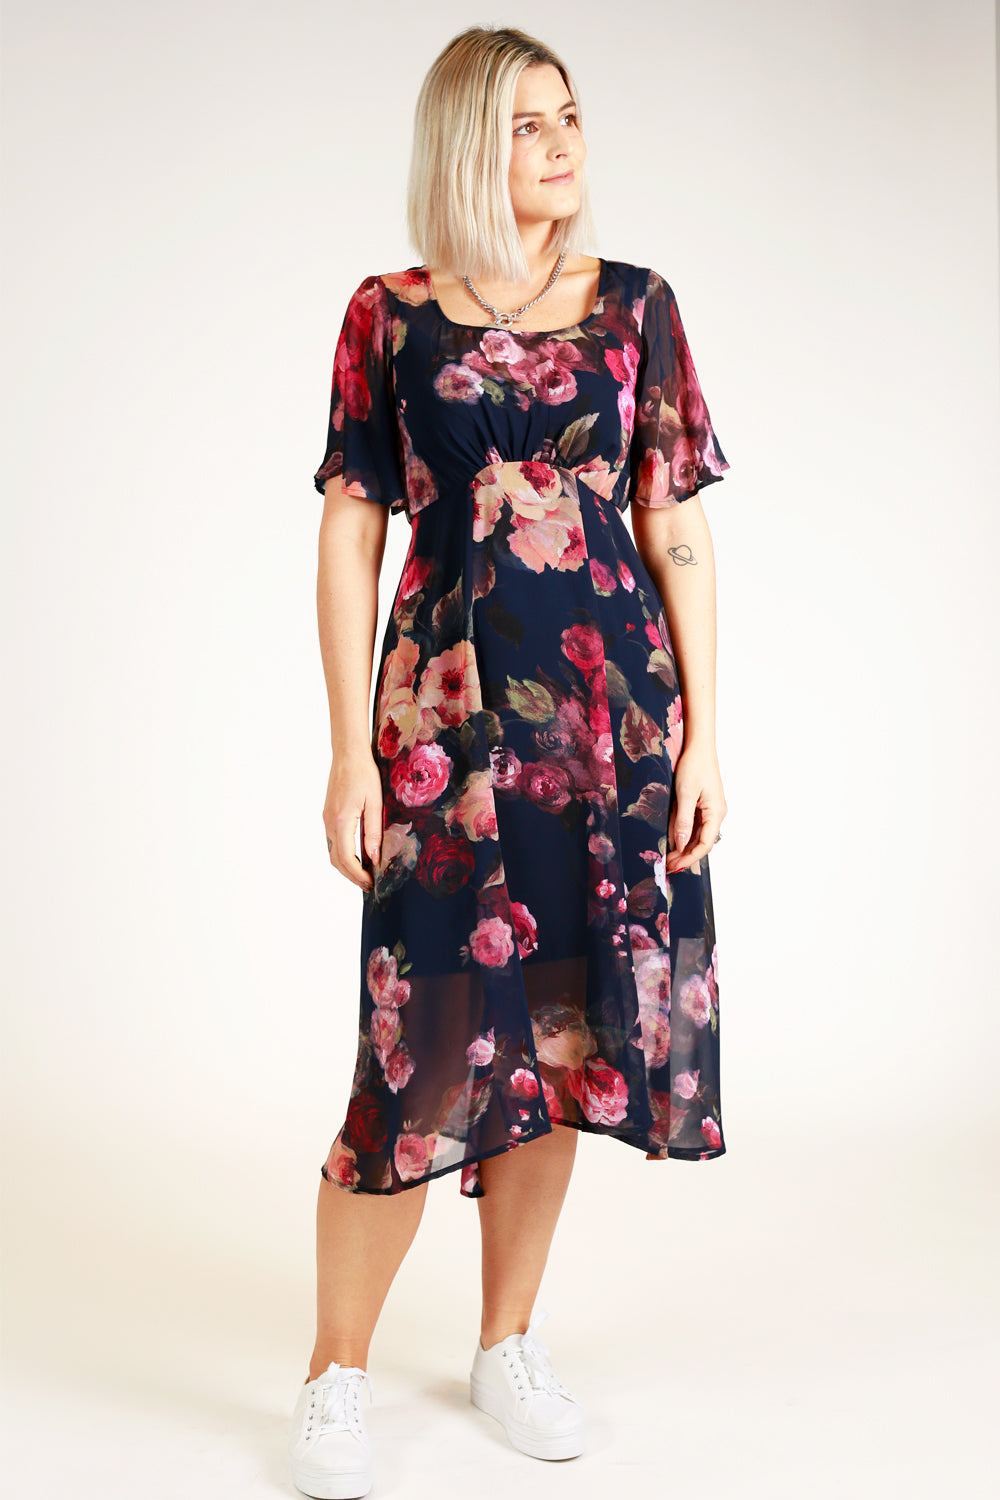 Down Town Navy Floral Dress